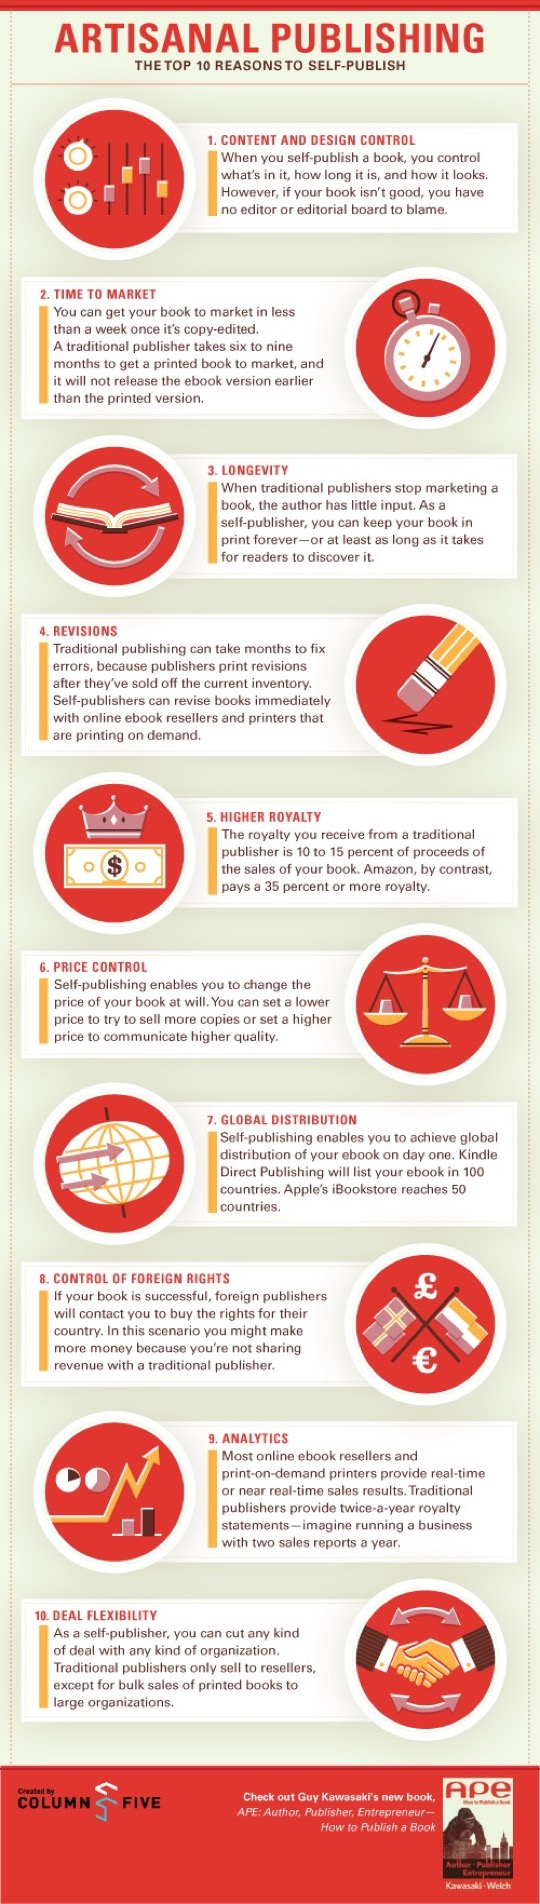 Top reasons to self-publish a book #infographic